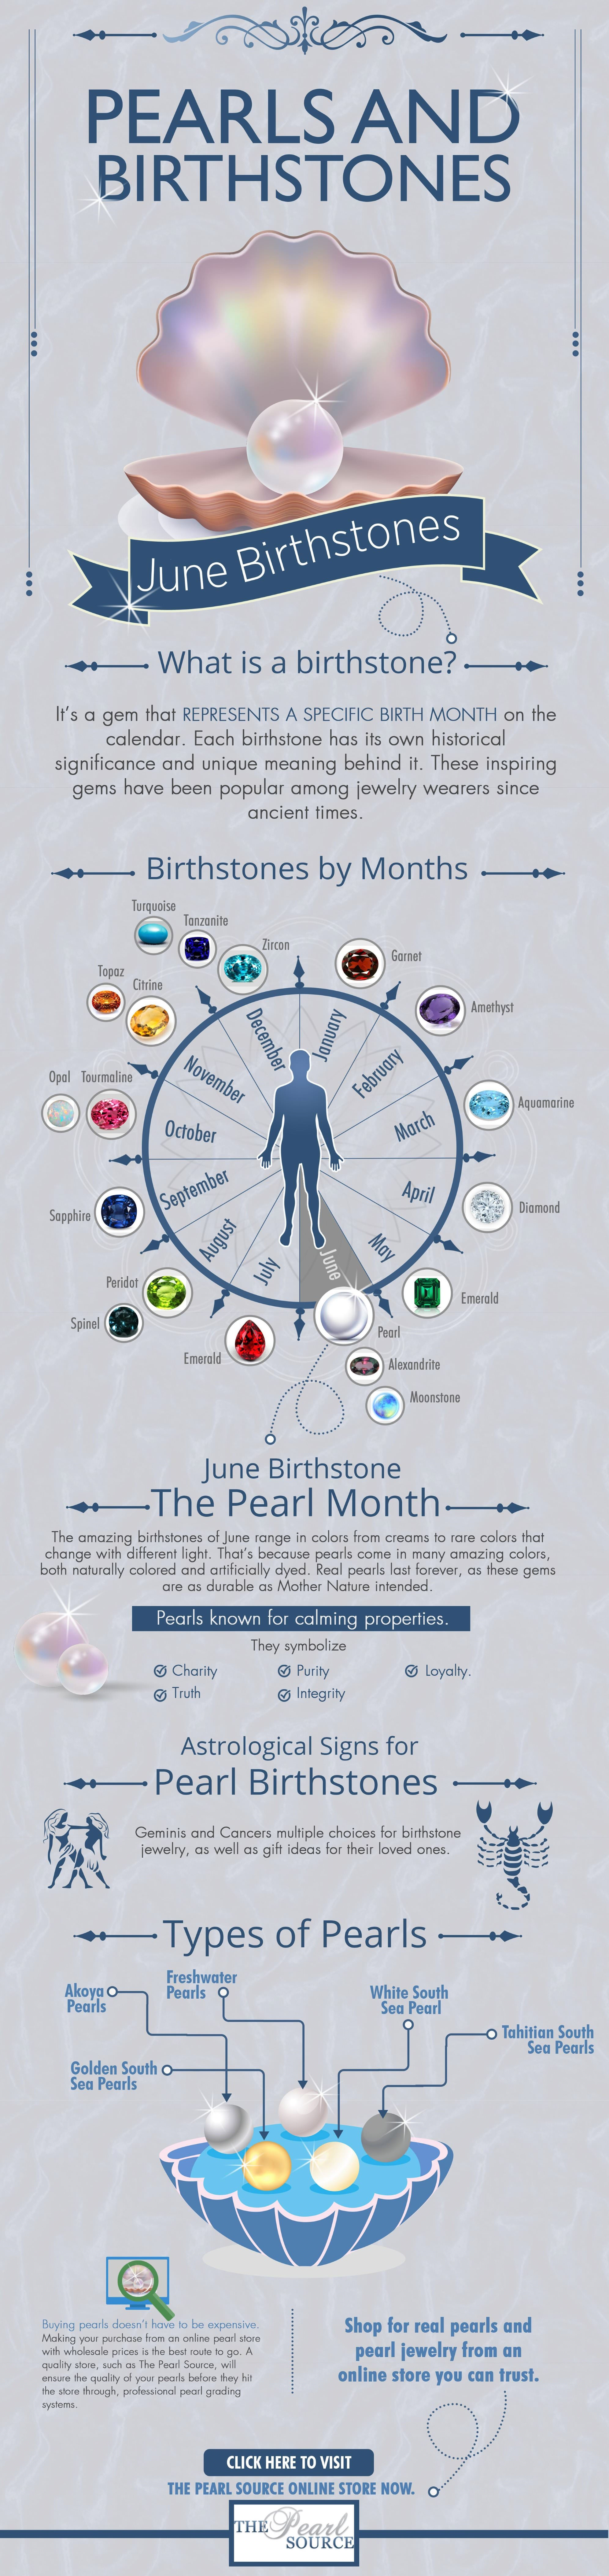 Pearls and June Birthstones